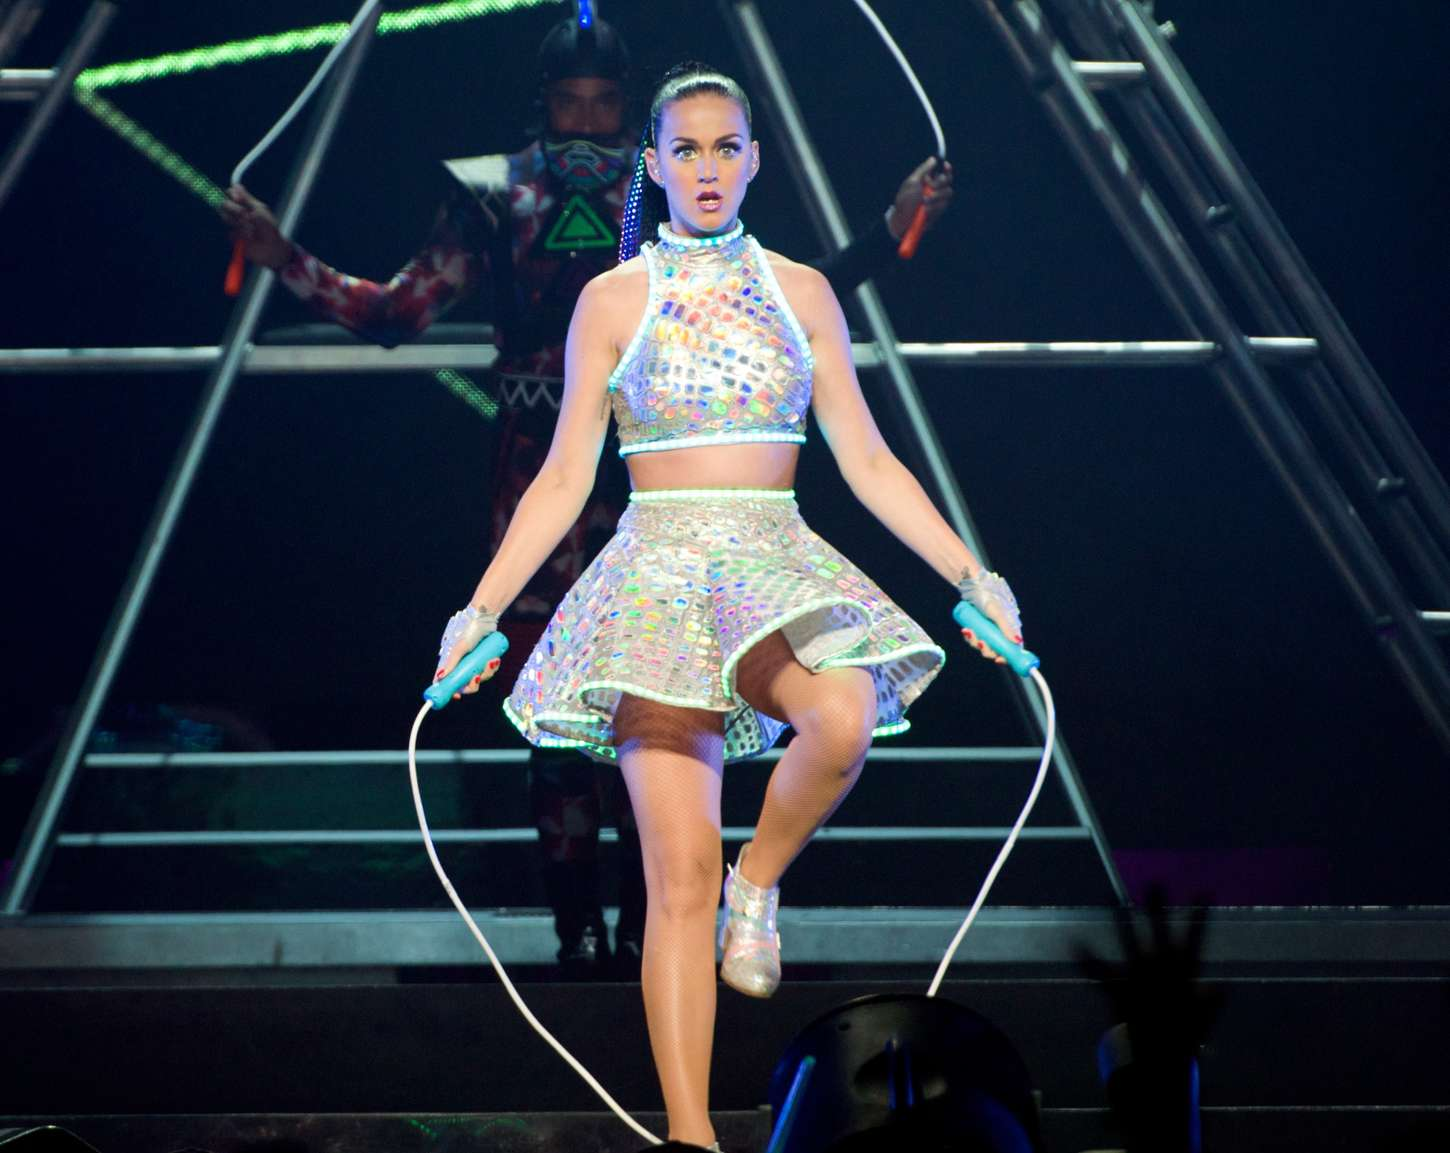 Katy Perry - The Prismatic World Tour in Melbourne